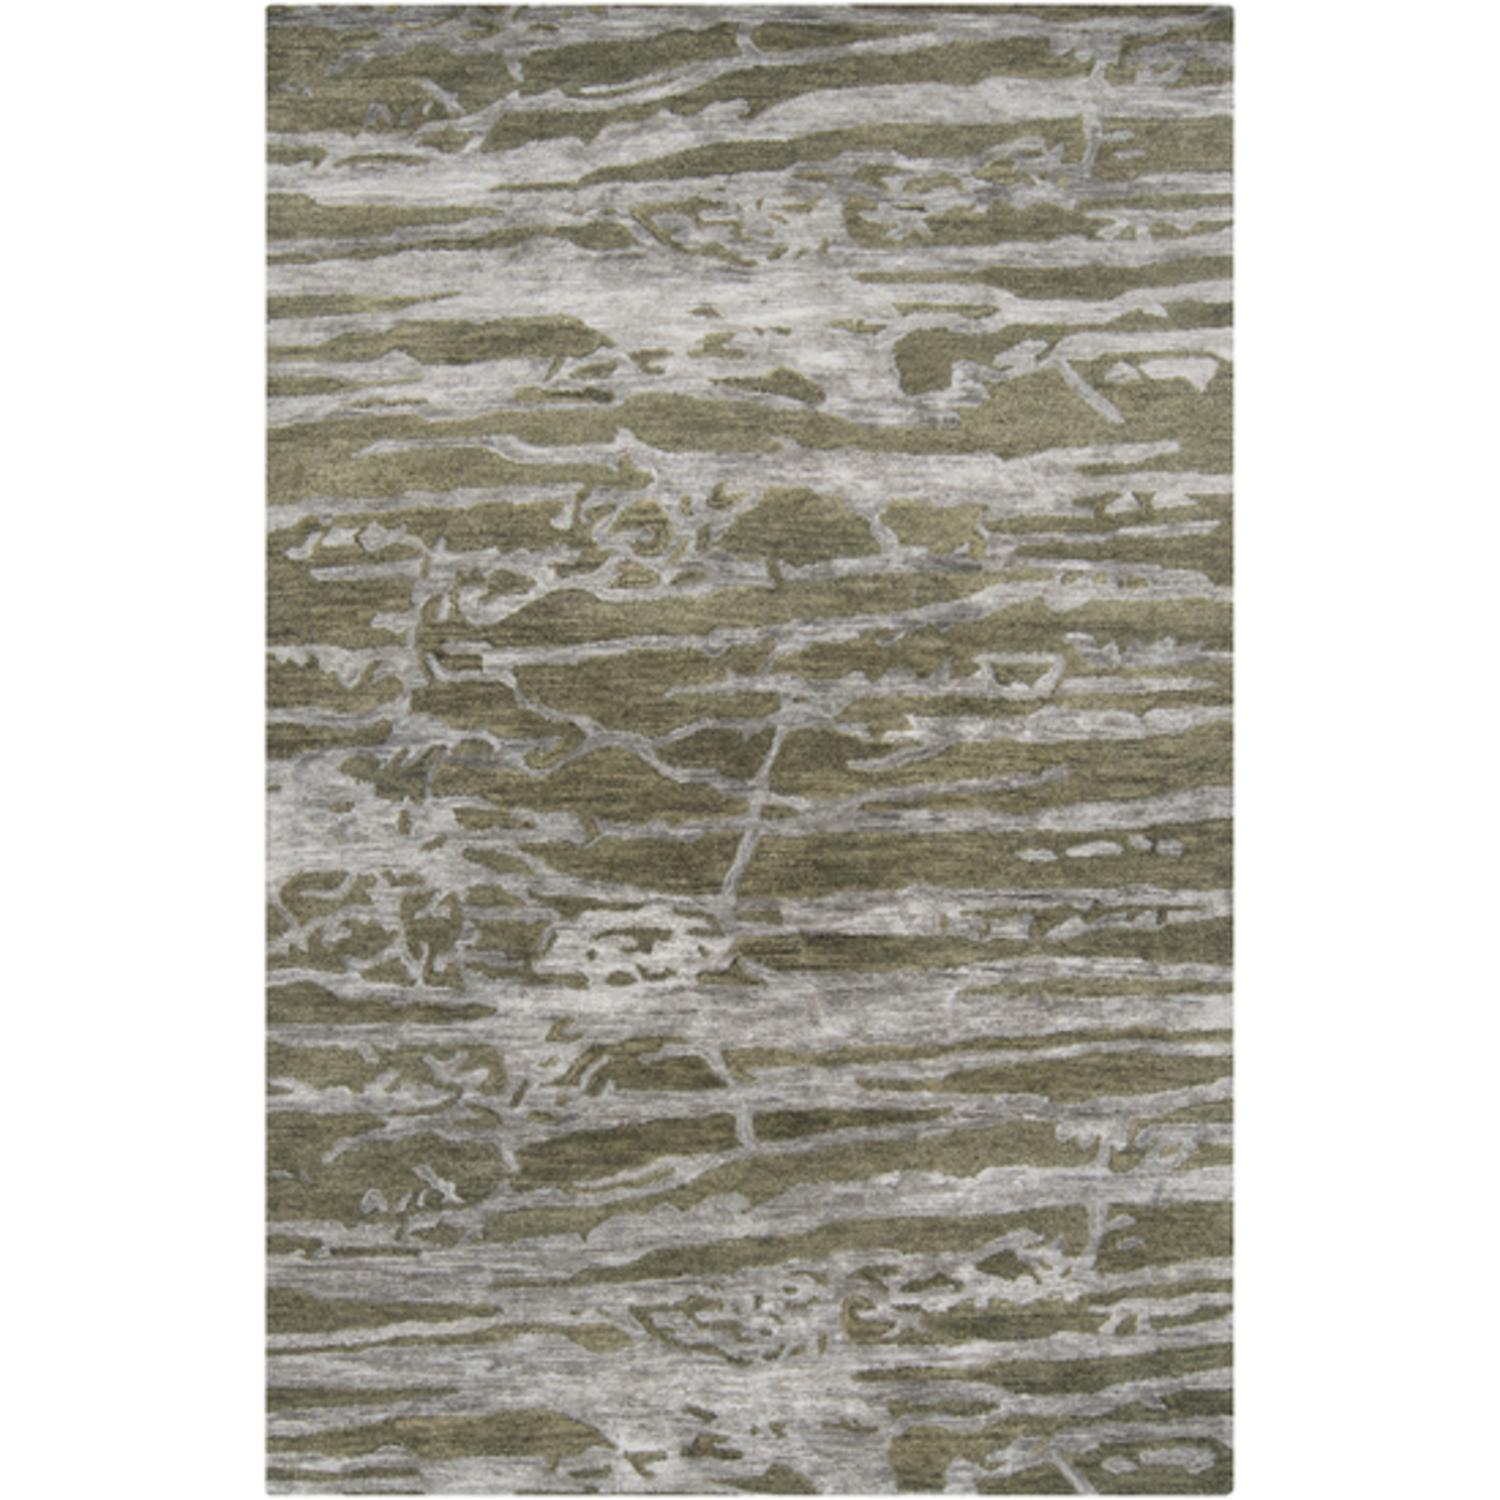 5' x 8' Grotto Mountain Rock Mossy Stone Green and Gray Wool Area Throw Rug